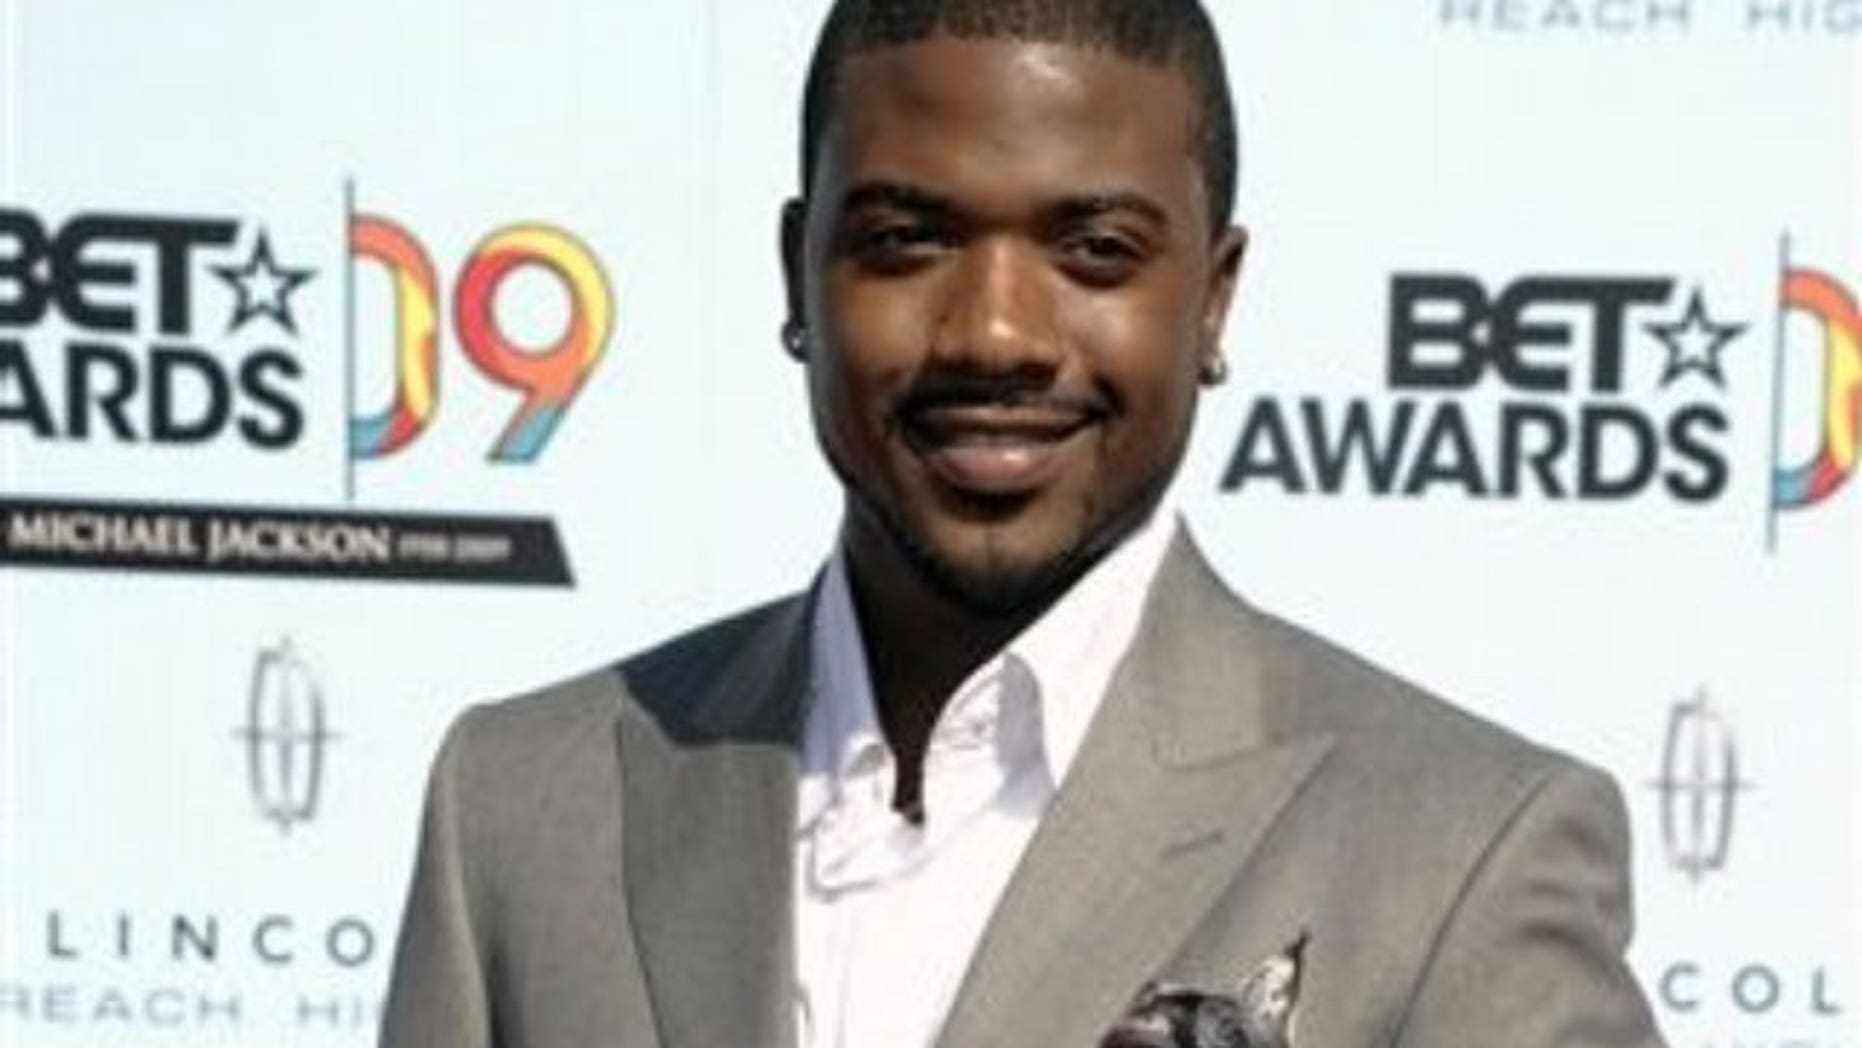 Reality star and singer Ray J on the red carpet.